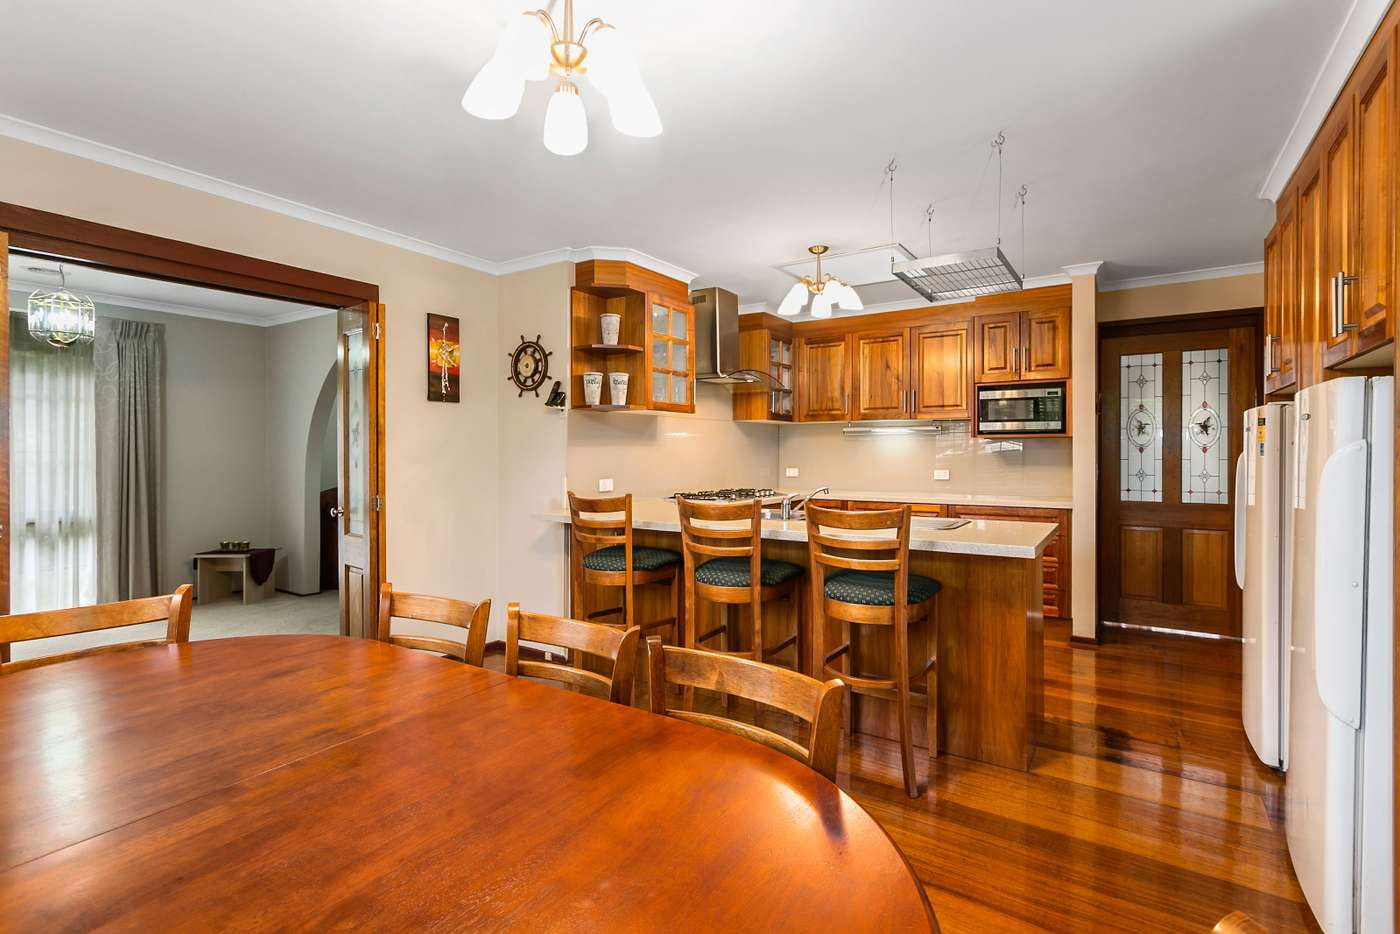 Main view of Homely house listing, 11 Cressonierre Court, Hallam VIC 3803